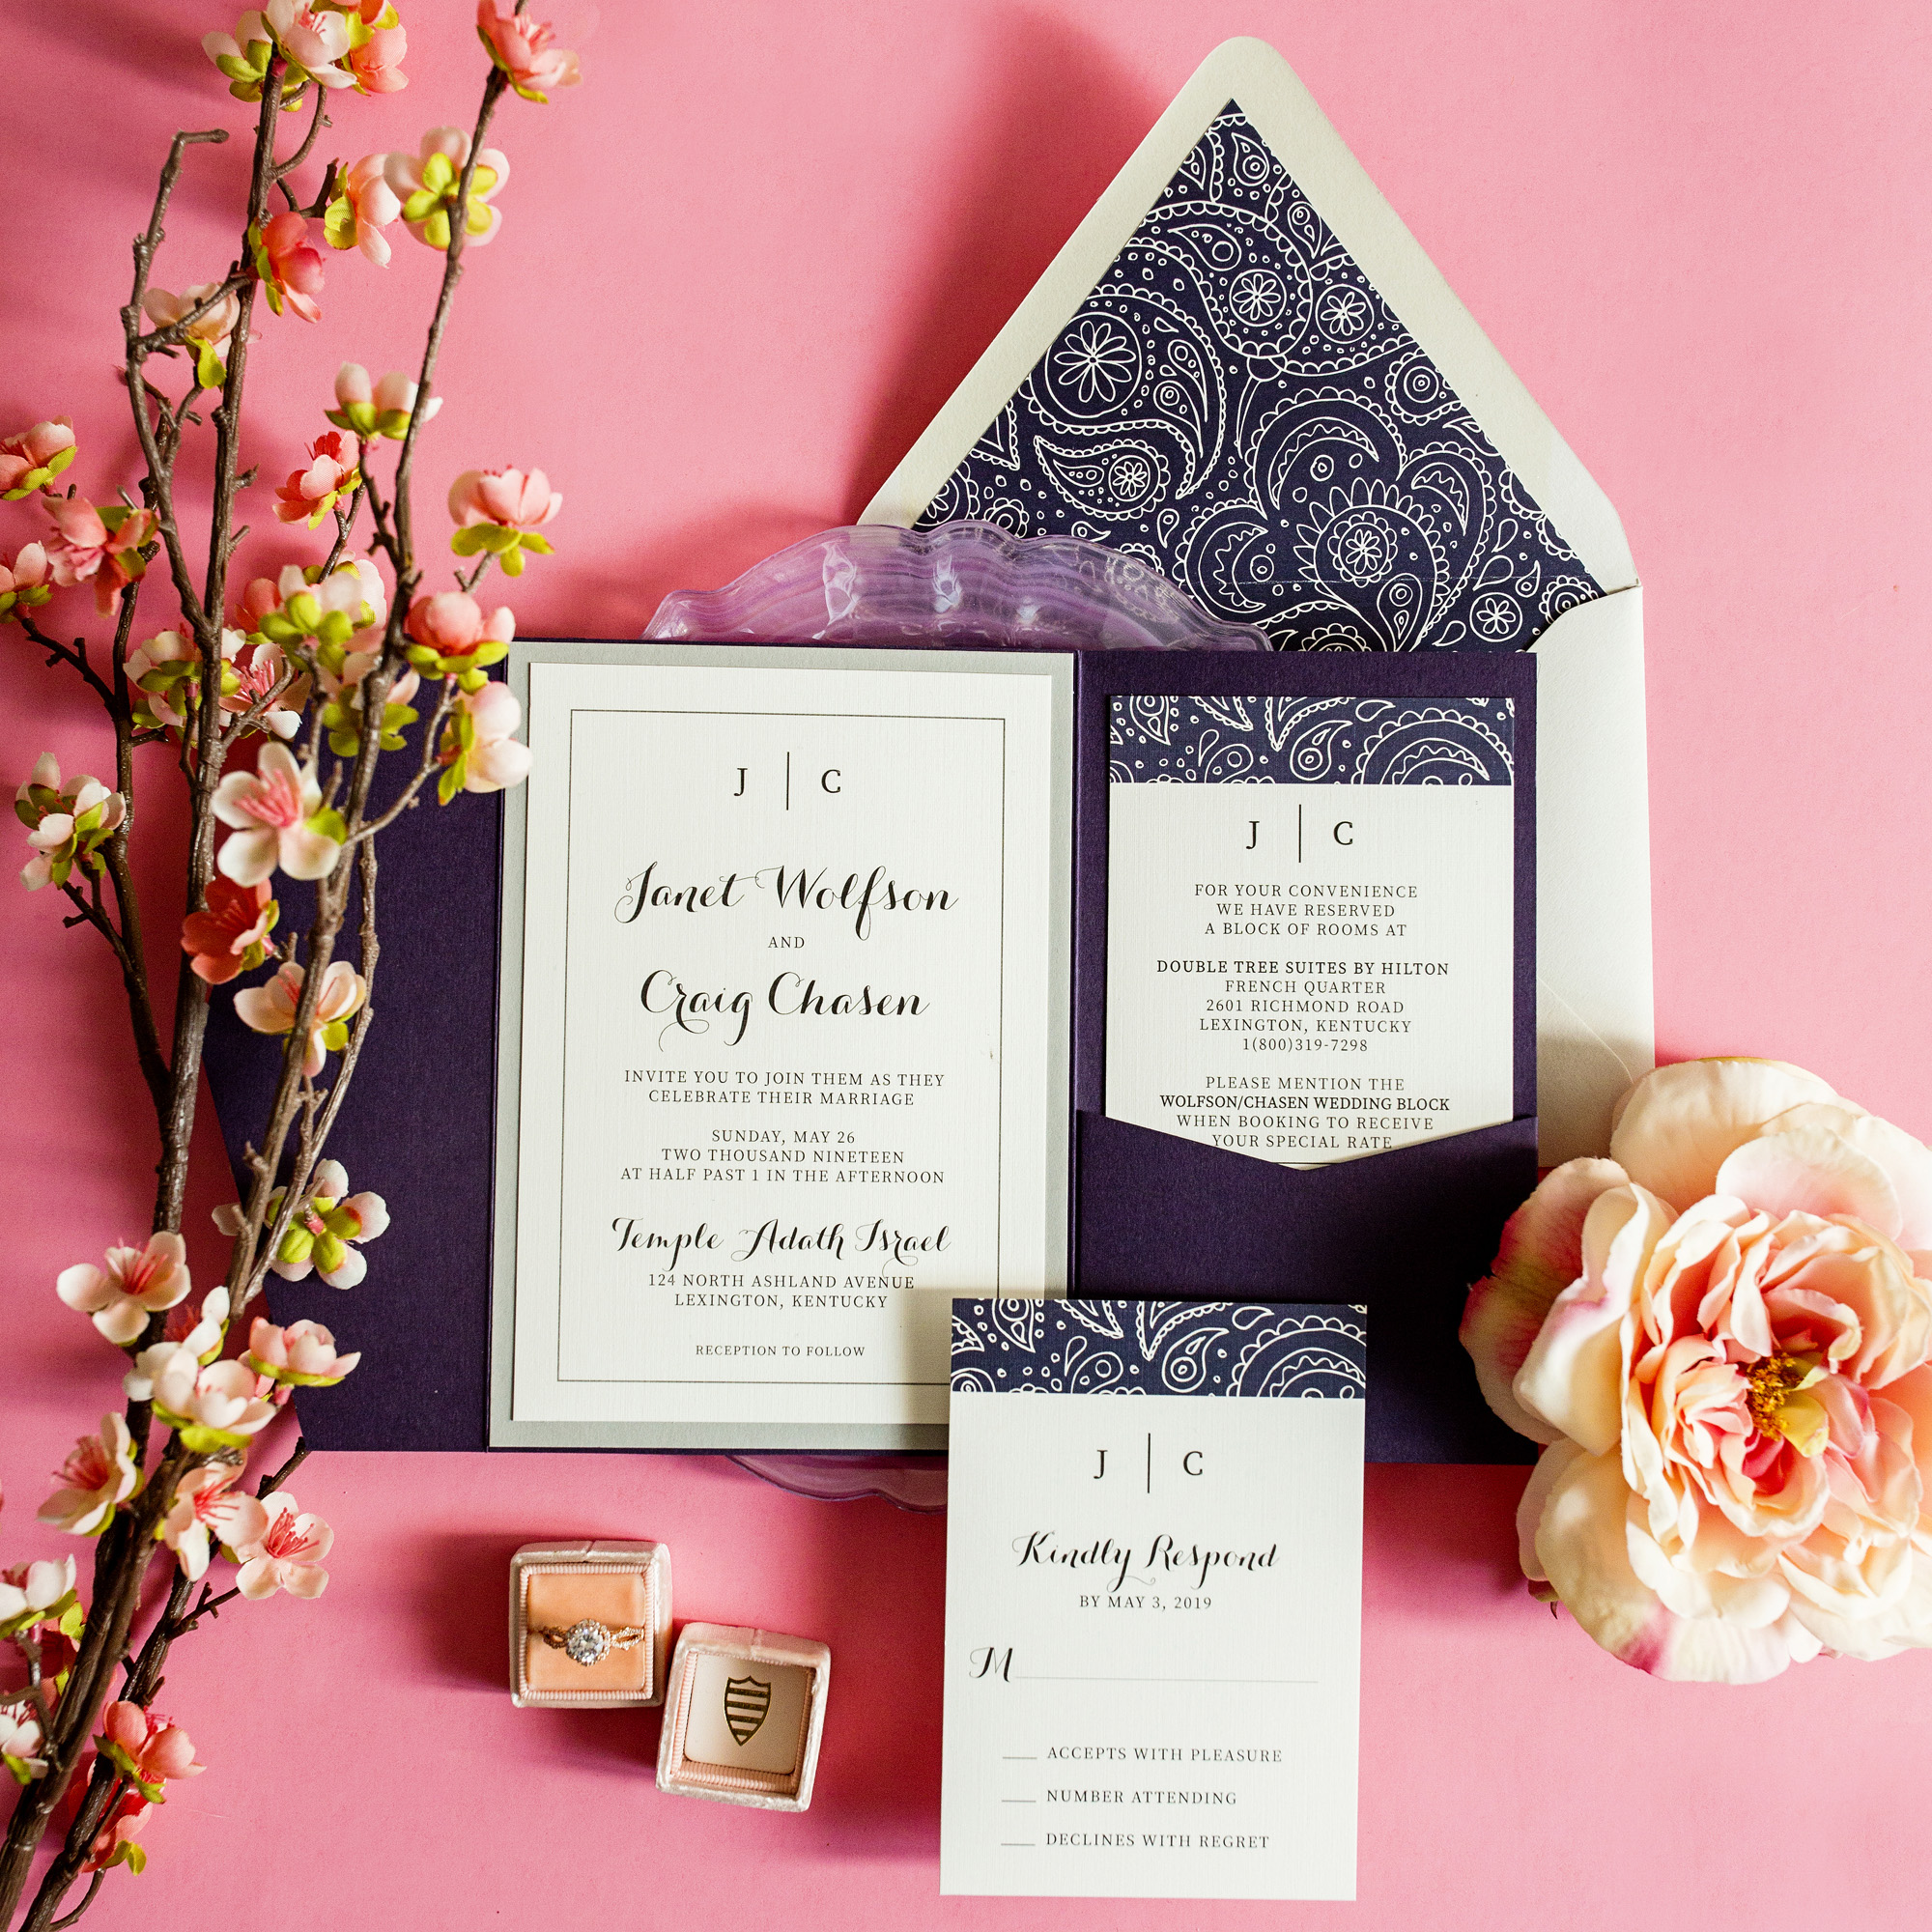 Seriously_Sabrina_Photography_Commercial_Simply_Done_Invites_2019_March_138